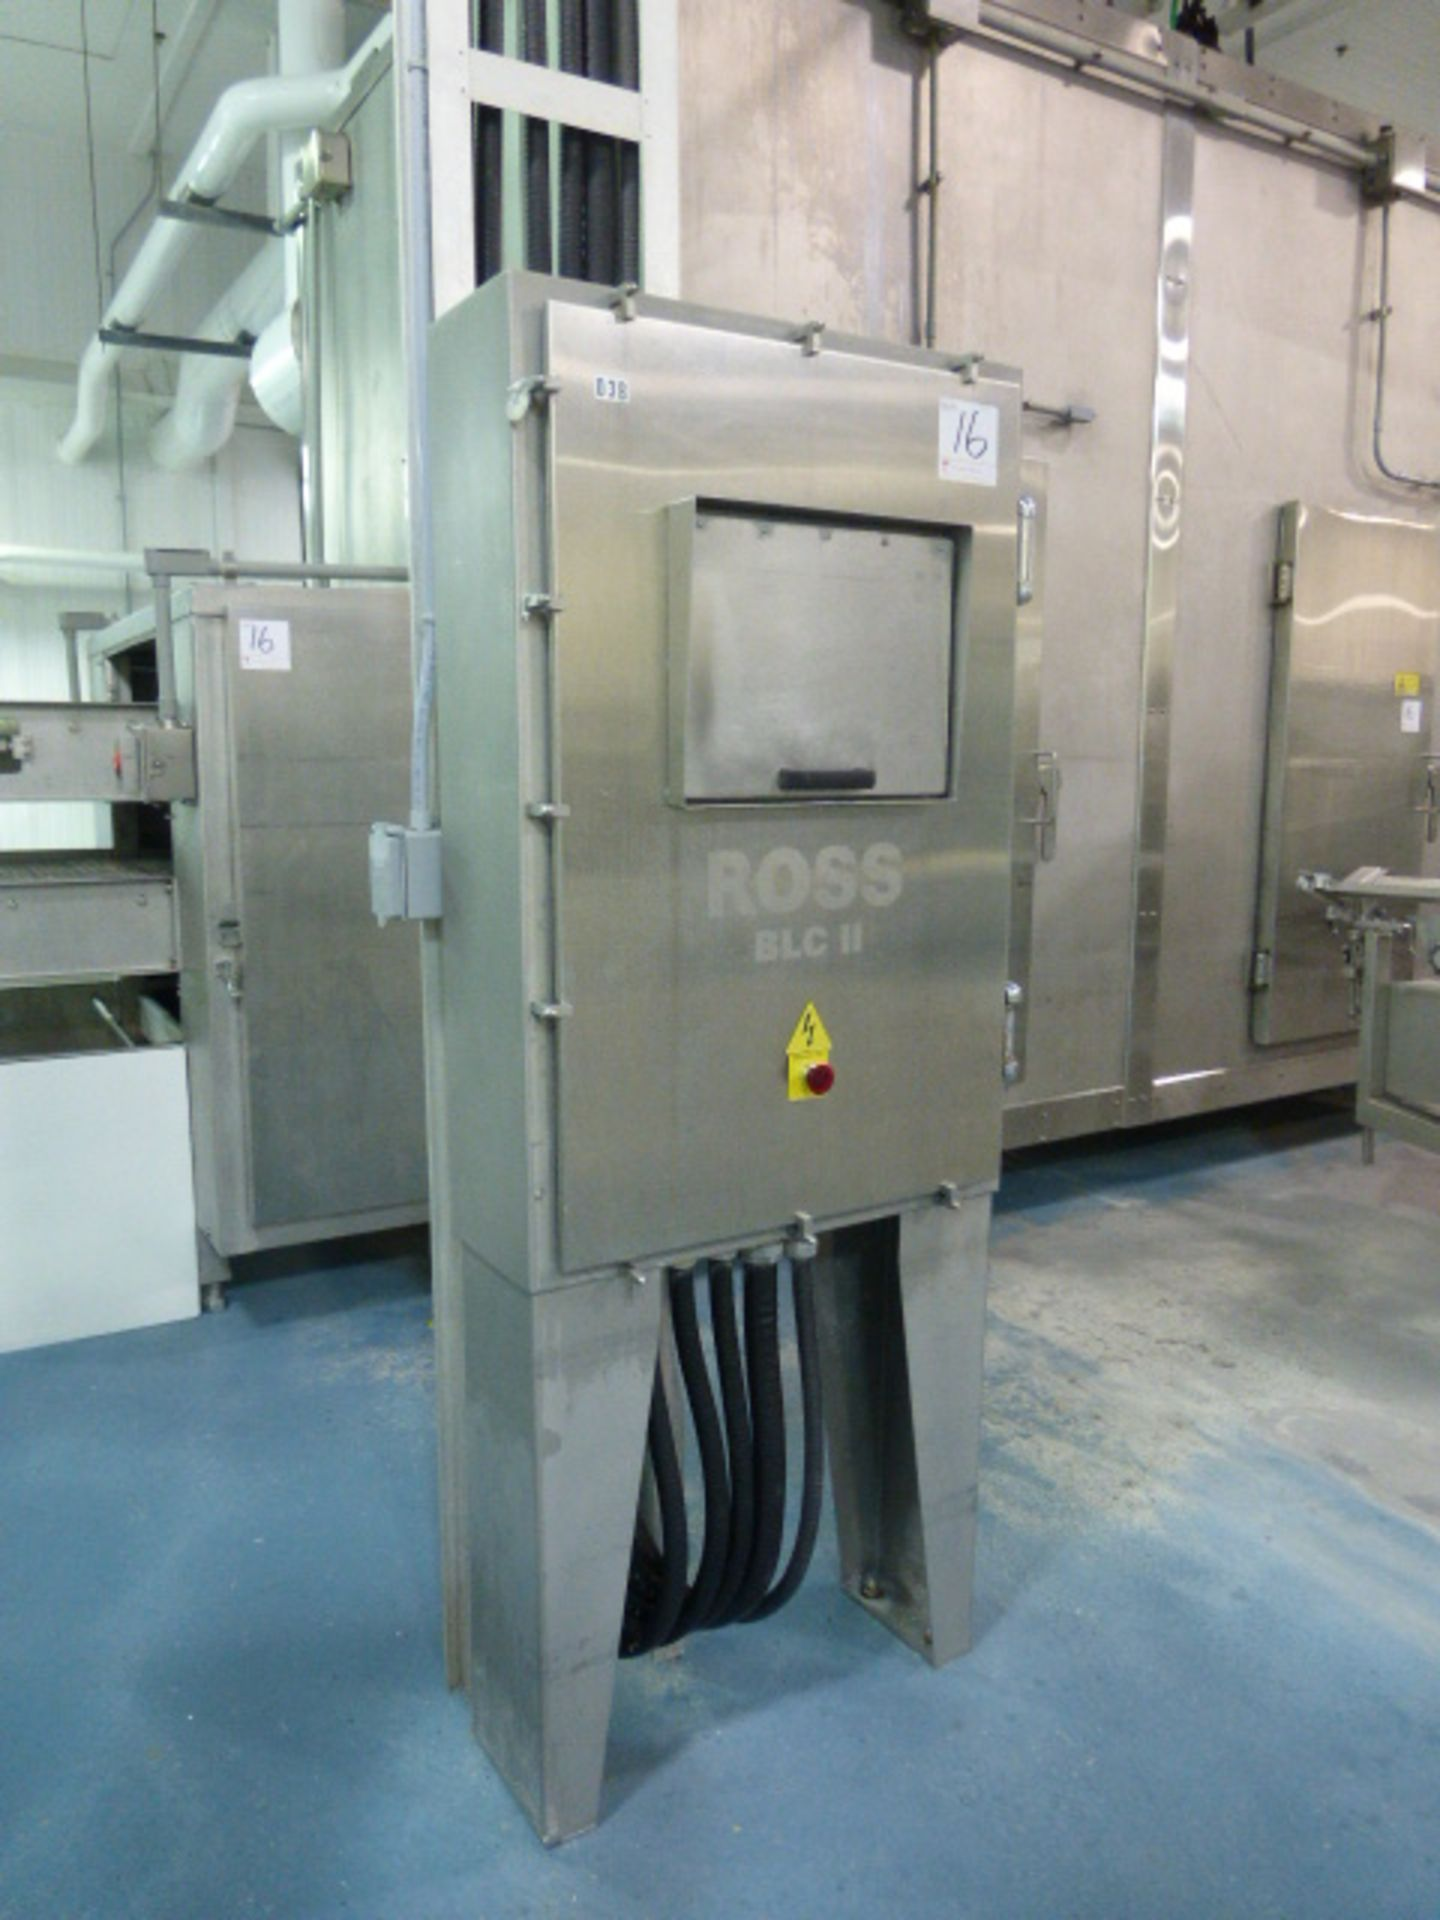 Lot 16 - Ross boundary layer control tunnel freezer/chiller, model BLC-II, ammonia, independent tunnel